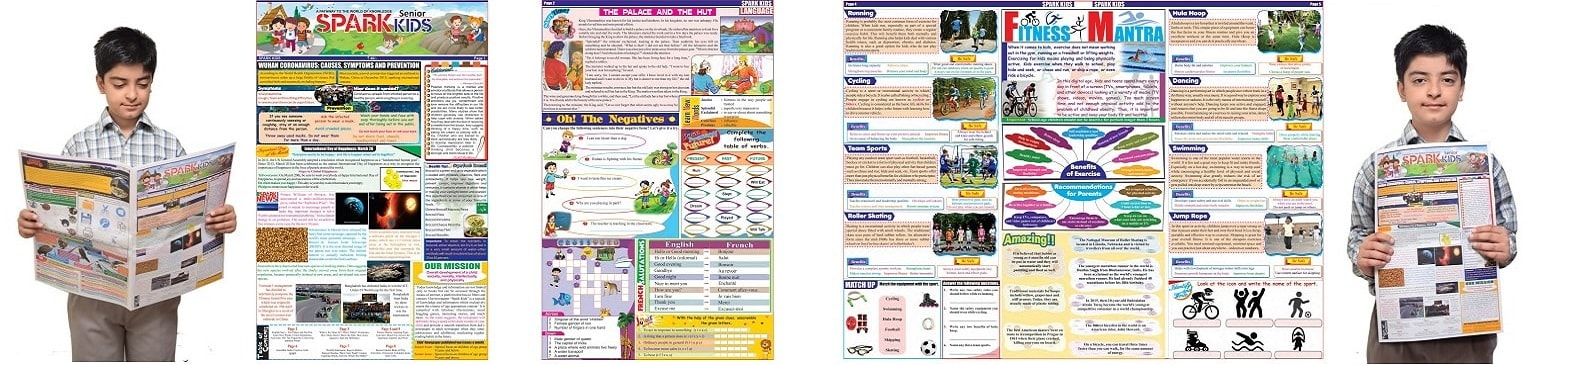 Spark Kids Senior Newspaper